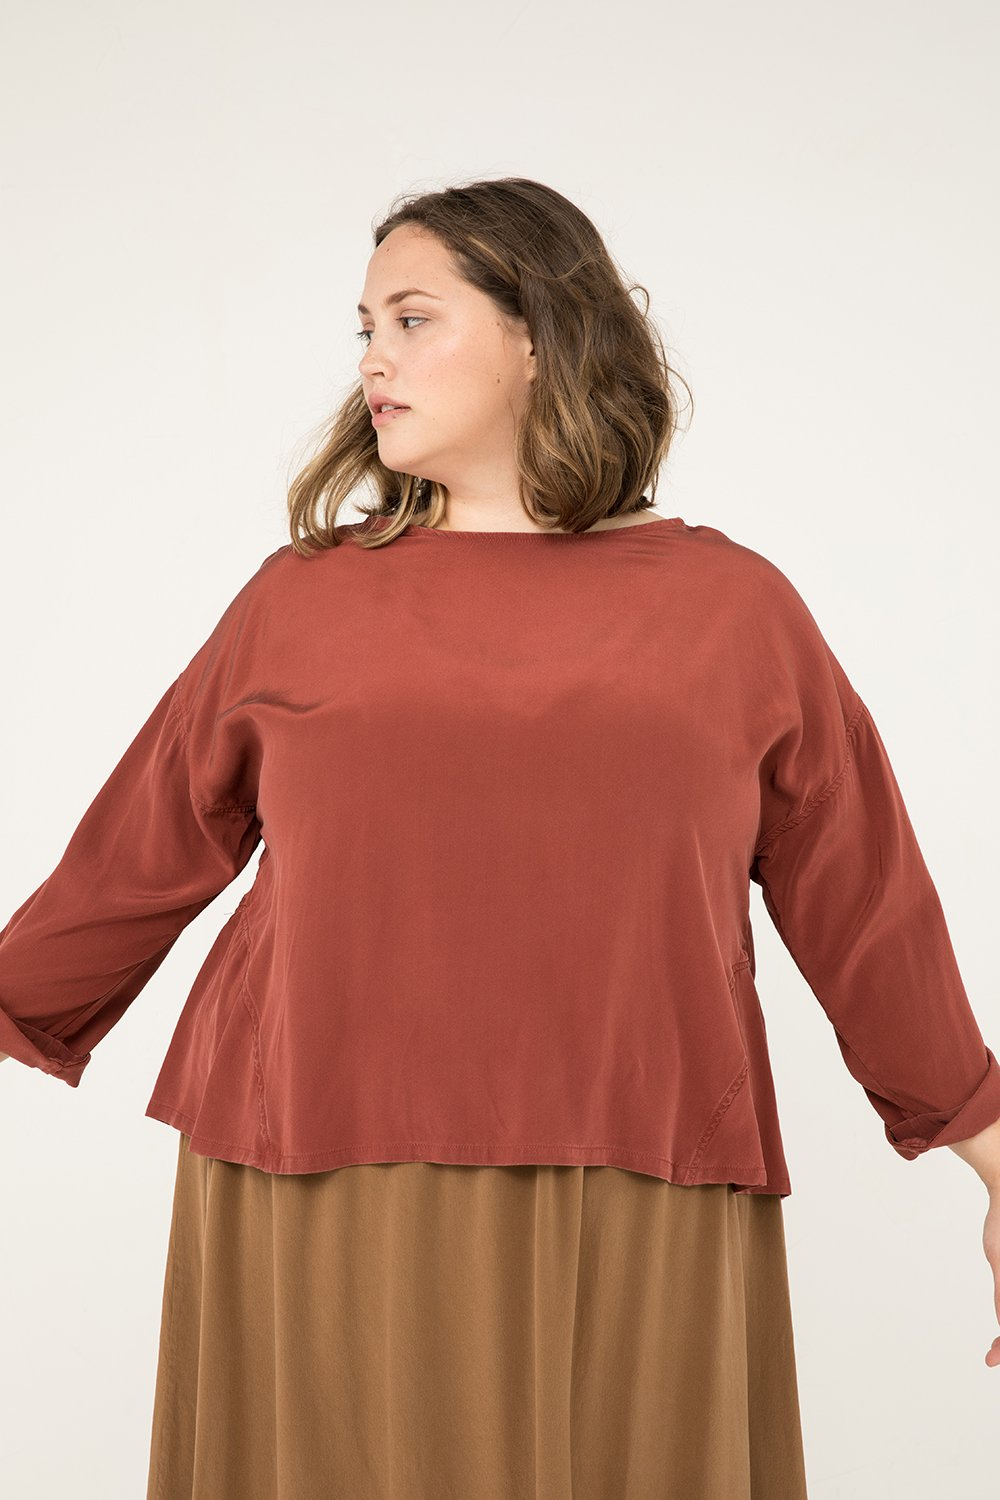 Parabola Top in Silk Crepe Rust - Sam-2XL